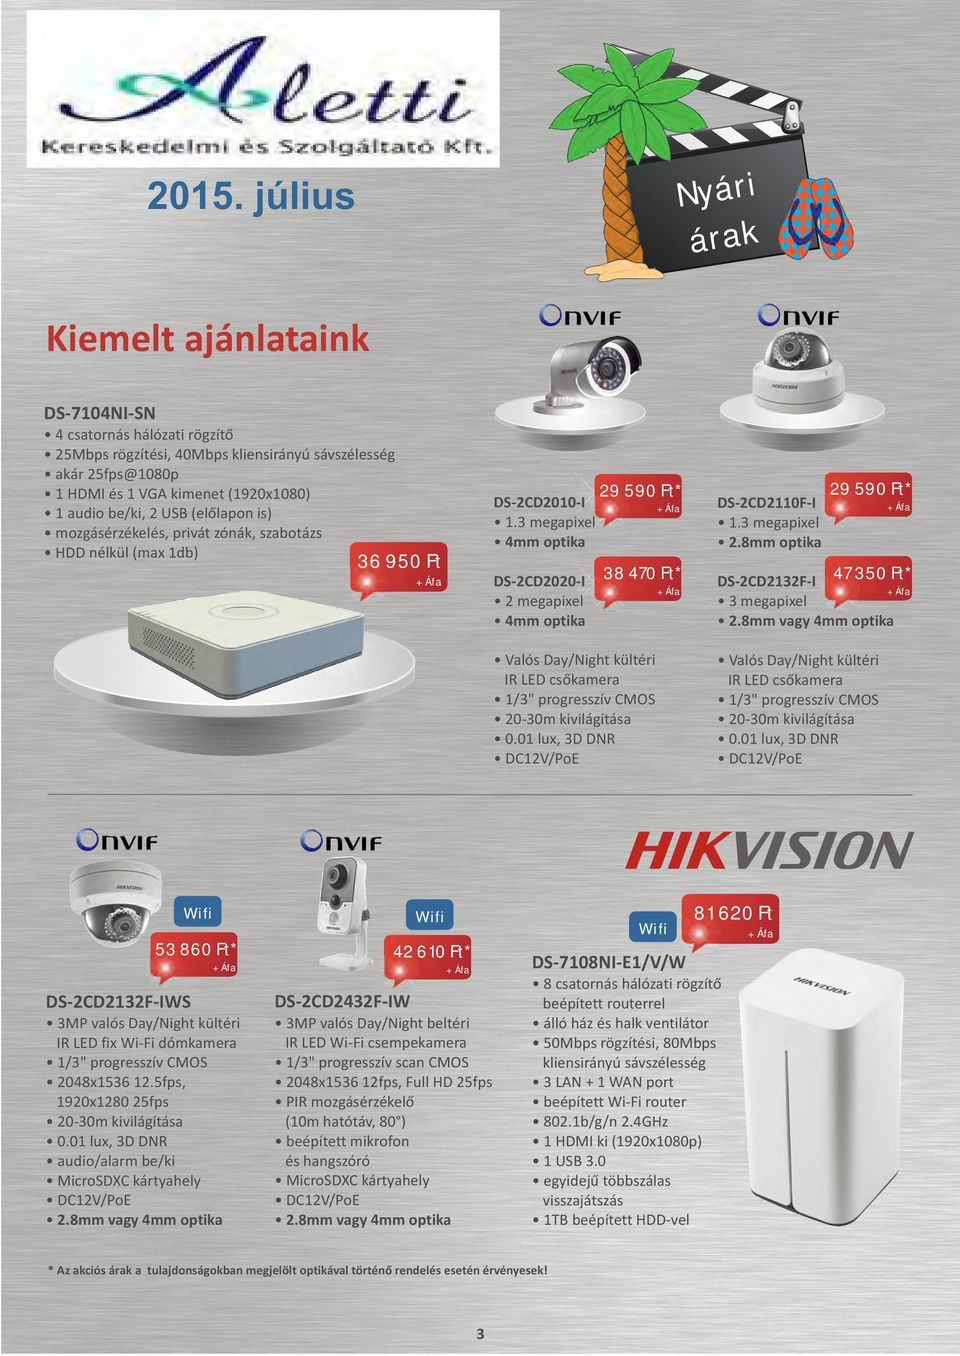 "3 megapixel 4mm optika 29 590 Ft* 36 950 Ft 38 470 Ft* DS-2CD2020-I 2 megapixel 4mm optika Valós Day/Night kültéri IR LED csõkamera 1/3"" progresszív CMOS 20-30m kivilágítása 0."